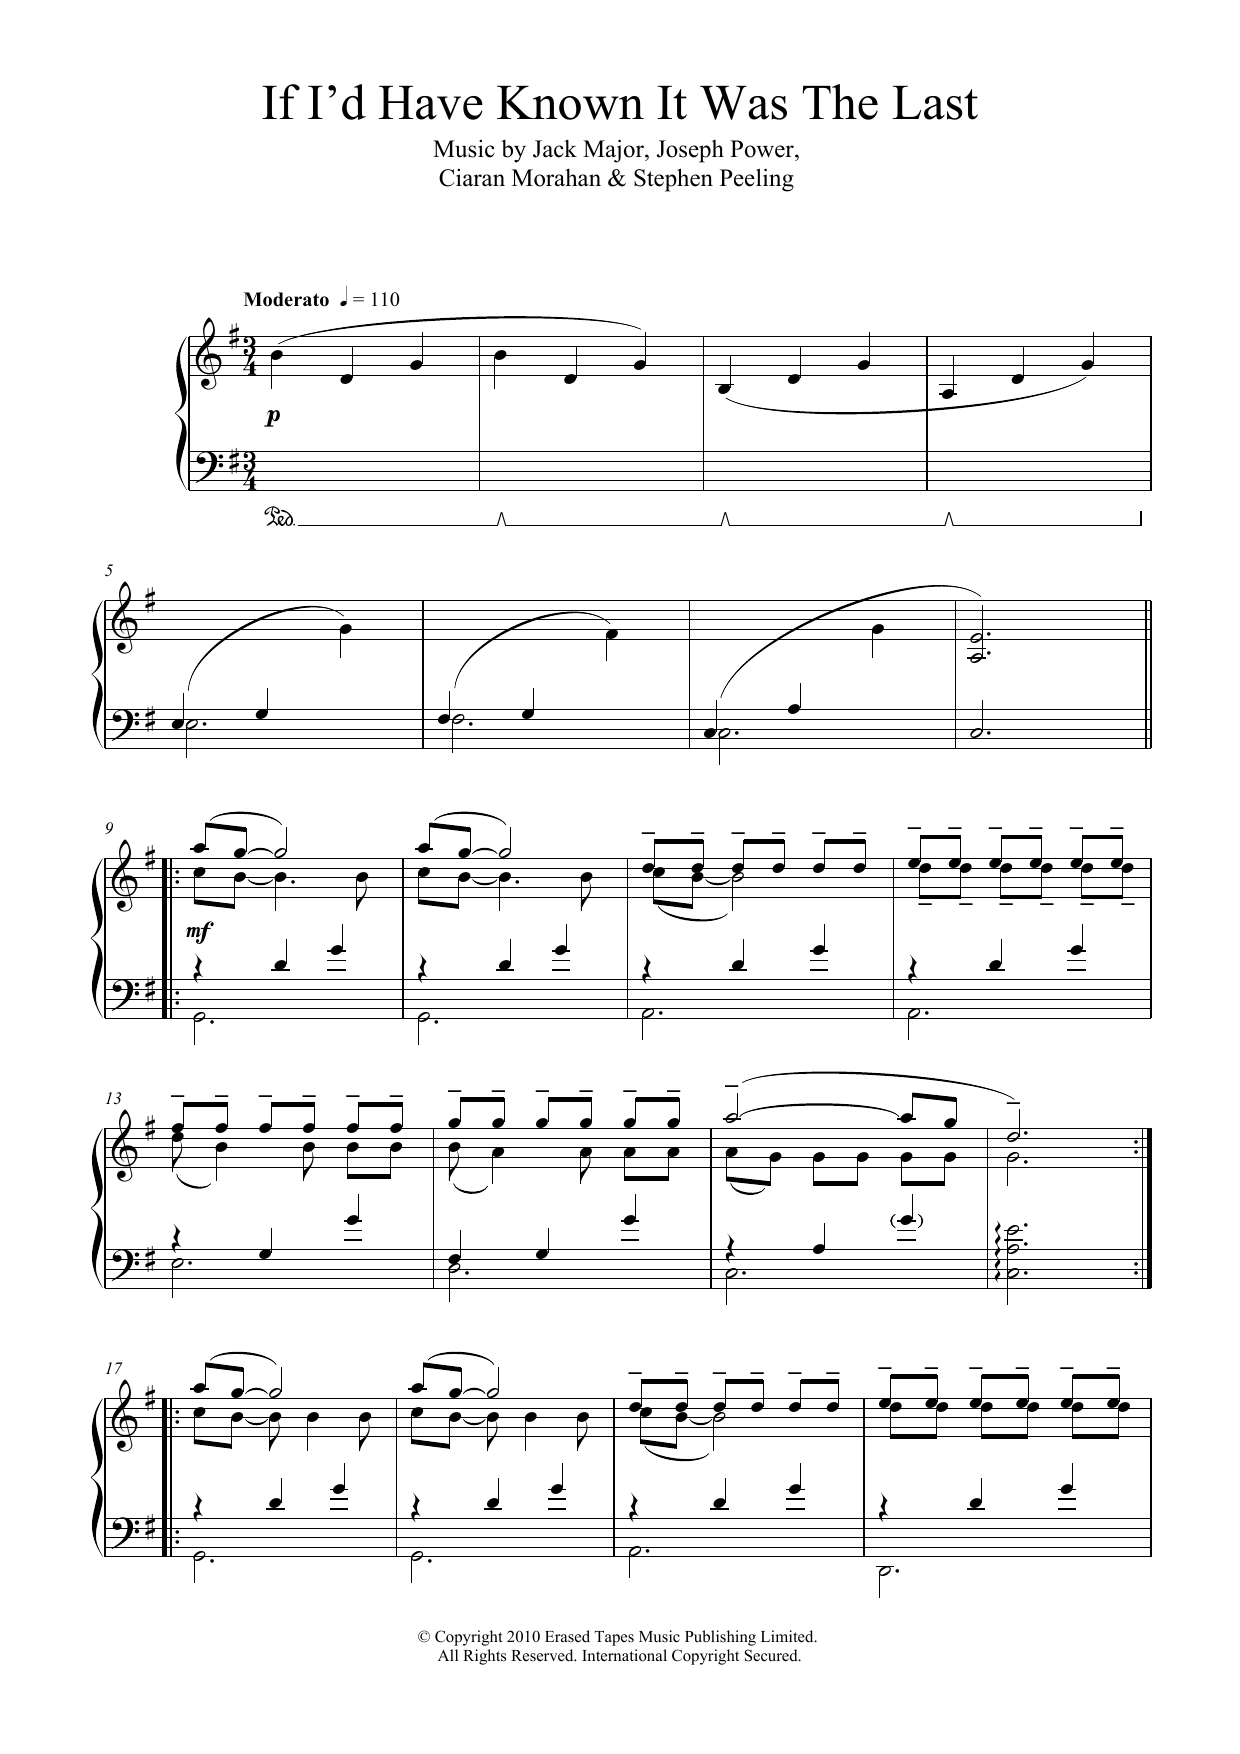 If I'd Have Known It Was The Last (Second Position) Sheet Music